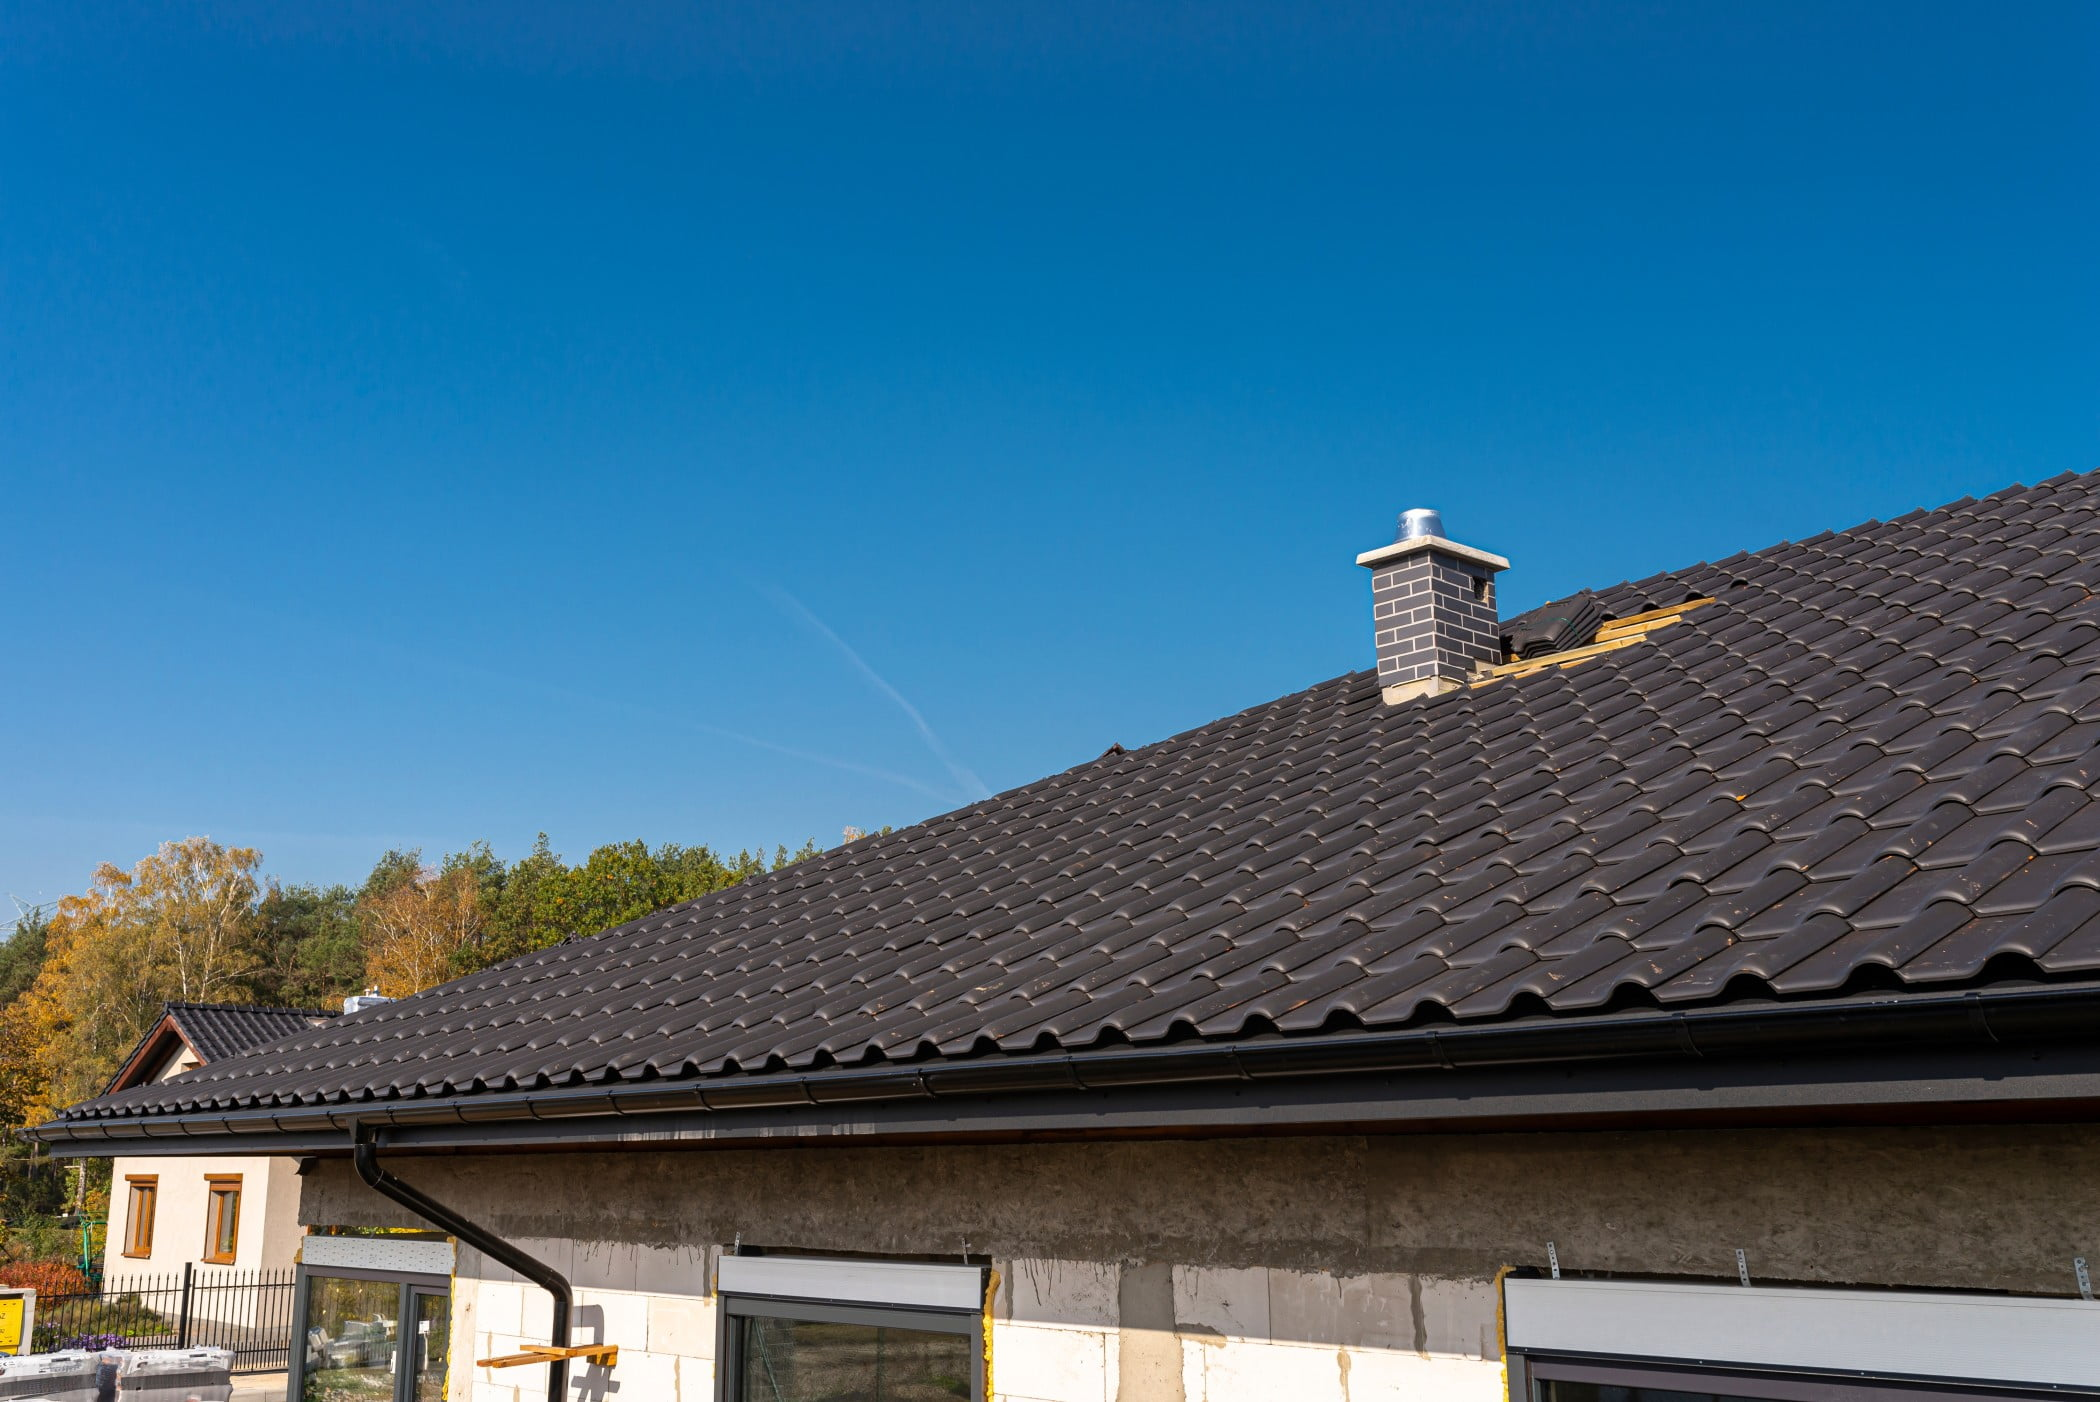 Rubber Coating Concrete Roofs For Waterproofing And Other Benefits